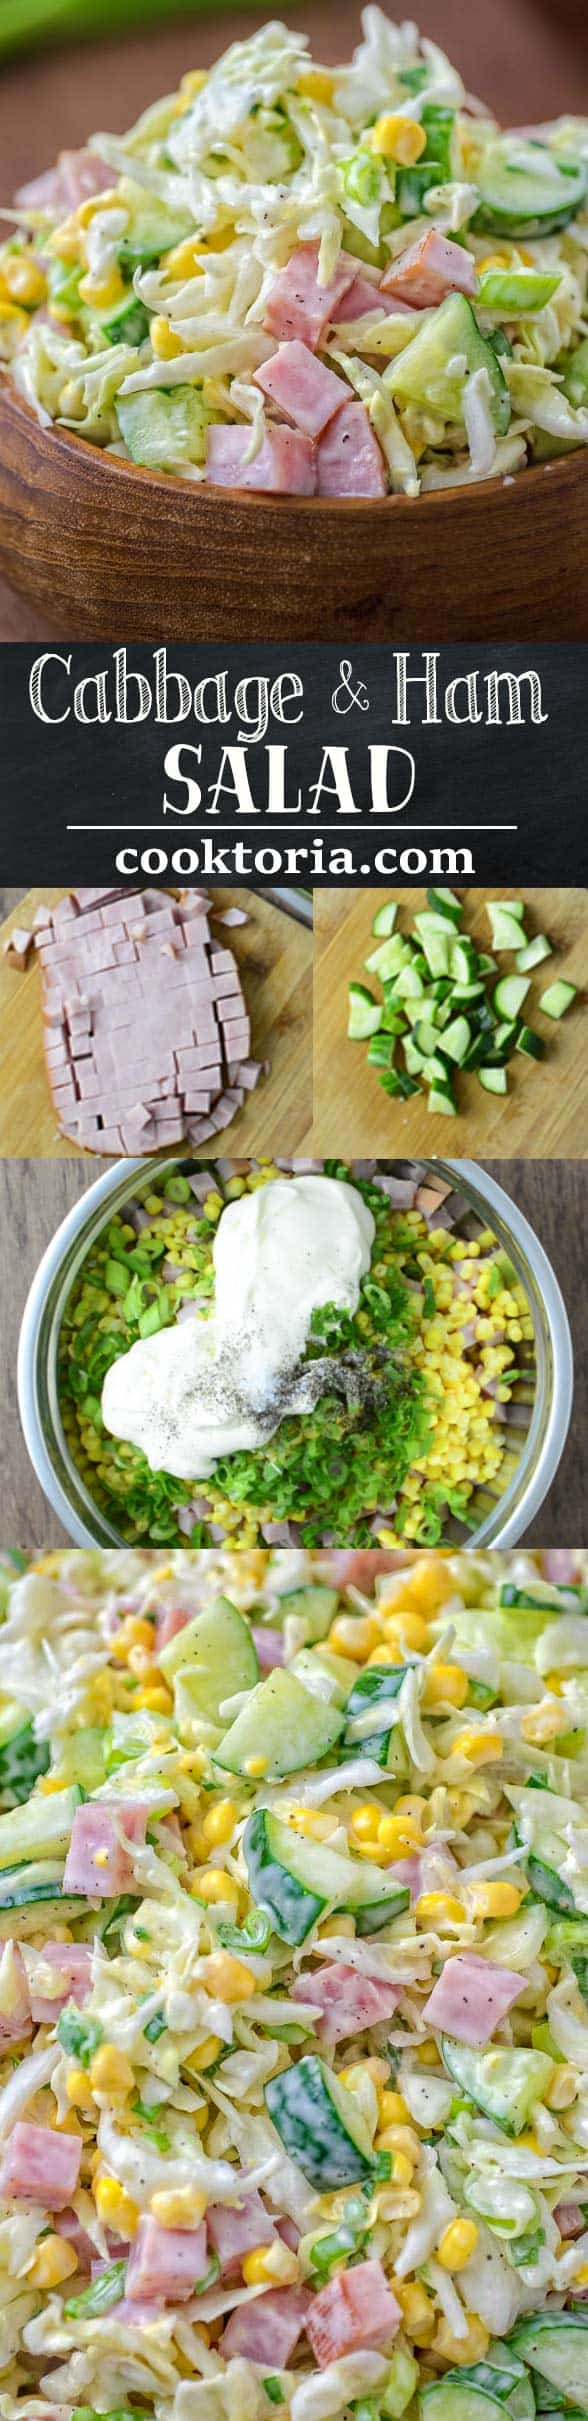 Made with fresh cabbage, cucumbers, ham, corn and scallions, this tasty and crunchy Cabbage and Ham Salad is packed with vitamins and makes a quick lunch or side dish.  ❤ COOKTORIA.COM